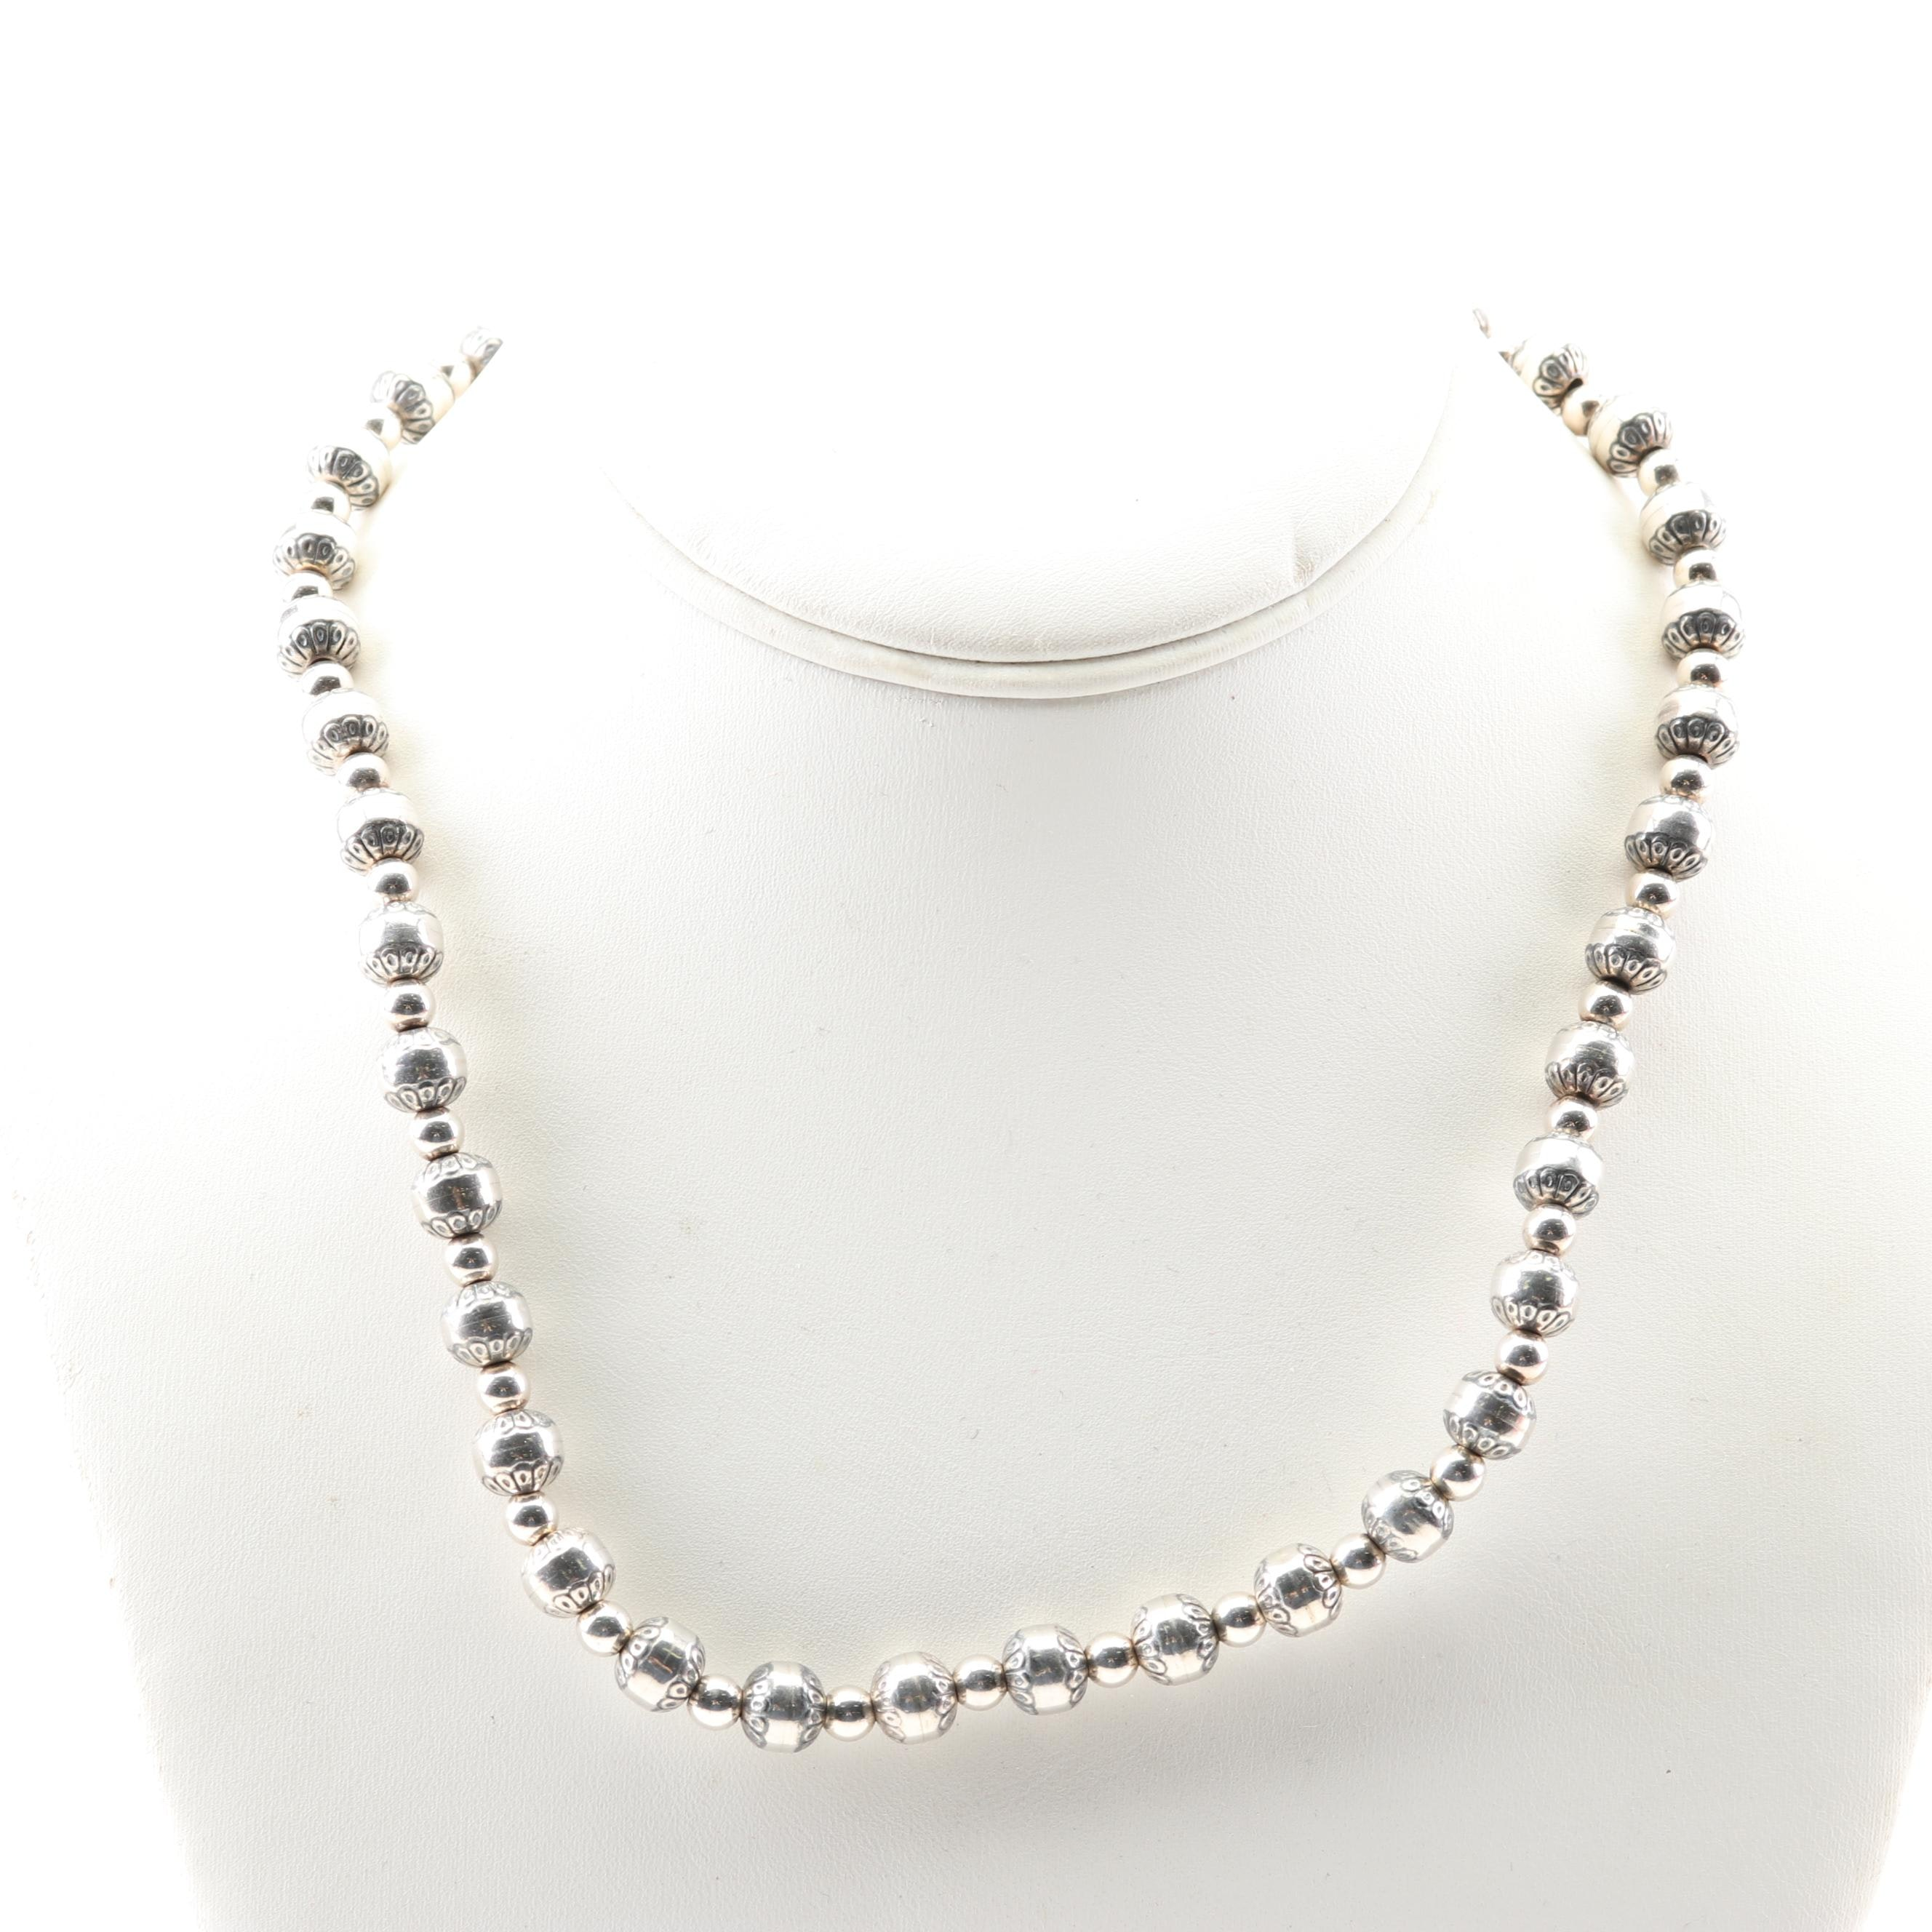 Carolyn Pollack Southwestern Style Sterling Silver Beaded Necklace